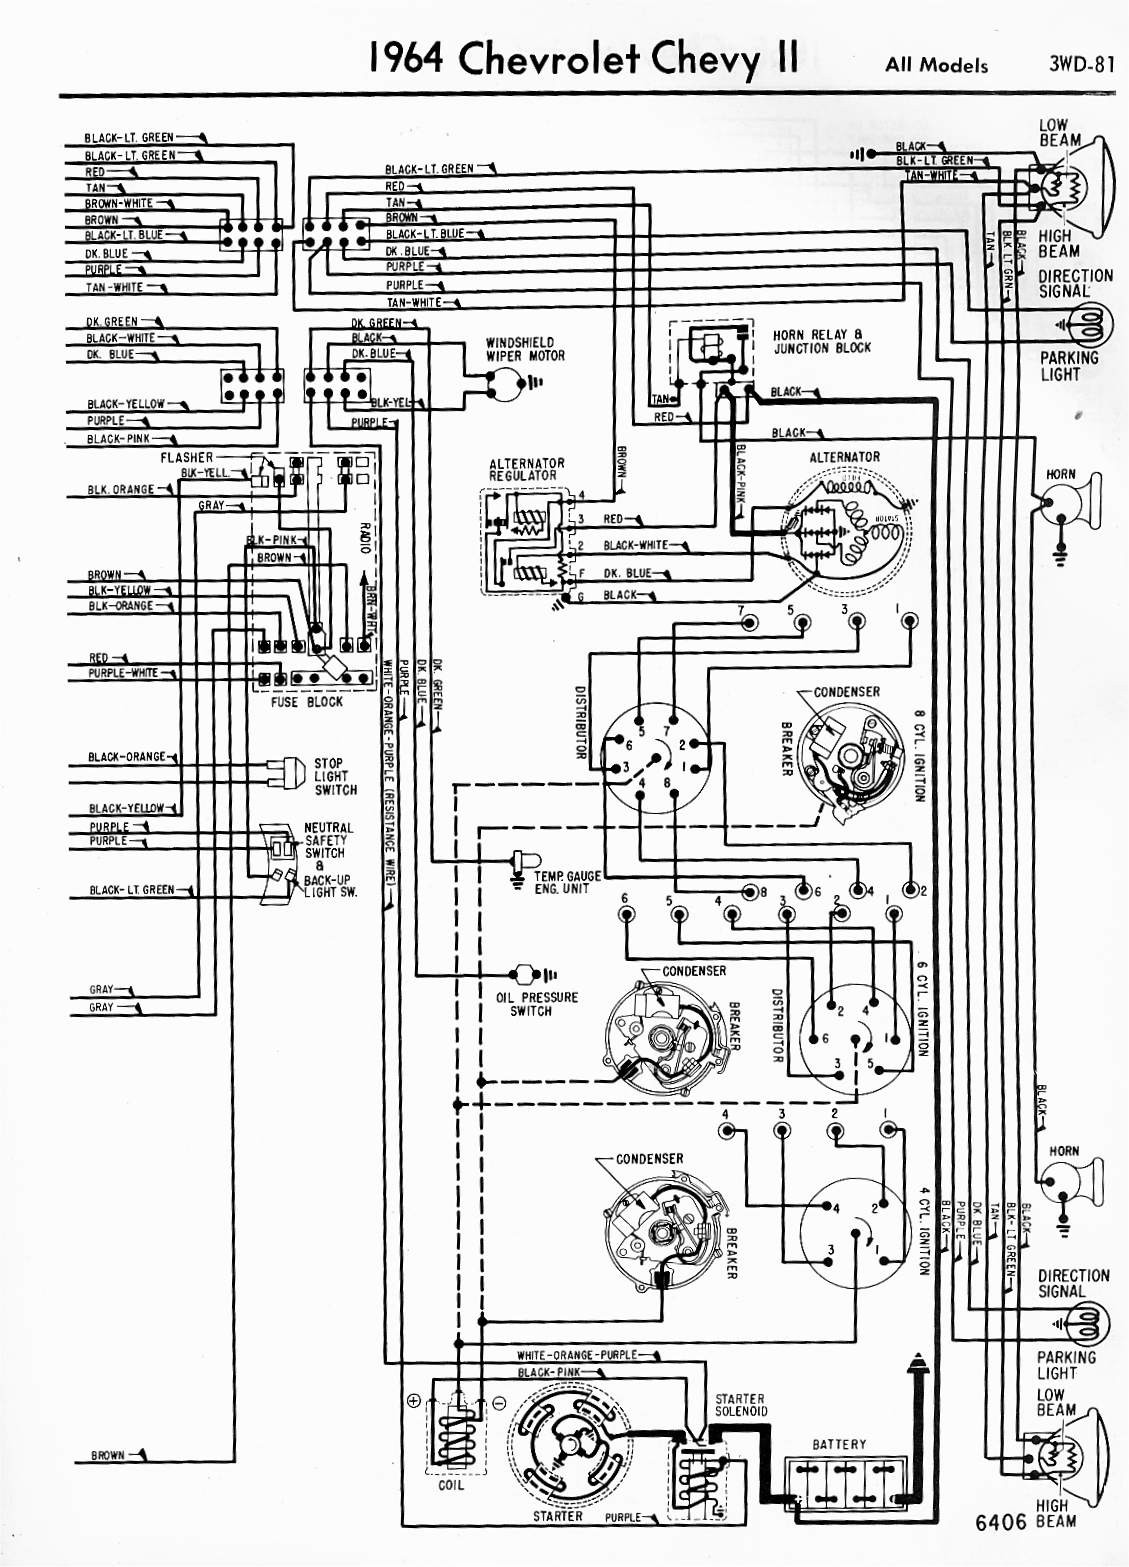 72 Chevy Truck Wiring Diagram New | Wiring Diagram Image on 1988 chevy s10 ignition switch wiring diagram, 1960 impala wiring diagram, 1963 chevy 2 wiring diagram, 1968 chevy camaro wiring diagram, 1963 chevy c10 wiring diagram, 1963 ford thunderbird wiring diagram, 1968 chevy chevelle wiring diagram, dodge caliber headlight wiring diagram, 1969 chevy camaro wiring diagram, 1965 chevy wiring diagram, 1970 plymouth cuda wiring diagram, 1963 ford galaxie wiring diagram, 1963 chevy c20 wiring diagram, 63 chevy wiring diagram, 1970 chevy chevelle wiring diagram, 1969 chevy chevelle wiring diagram, 57 chevy wiring diagram, 1963 chevy truck shop manual, 2005 chevy malibu classic wiring diagram, chevy truck ignition switch wiring diagram,